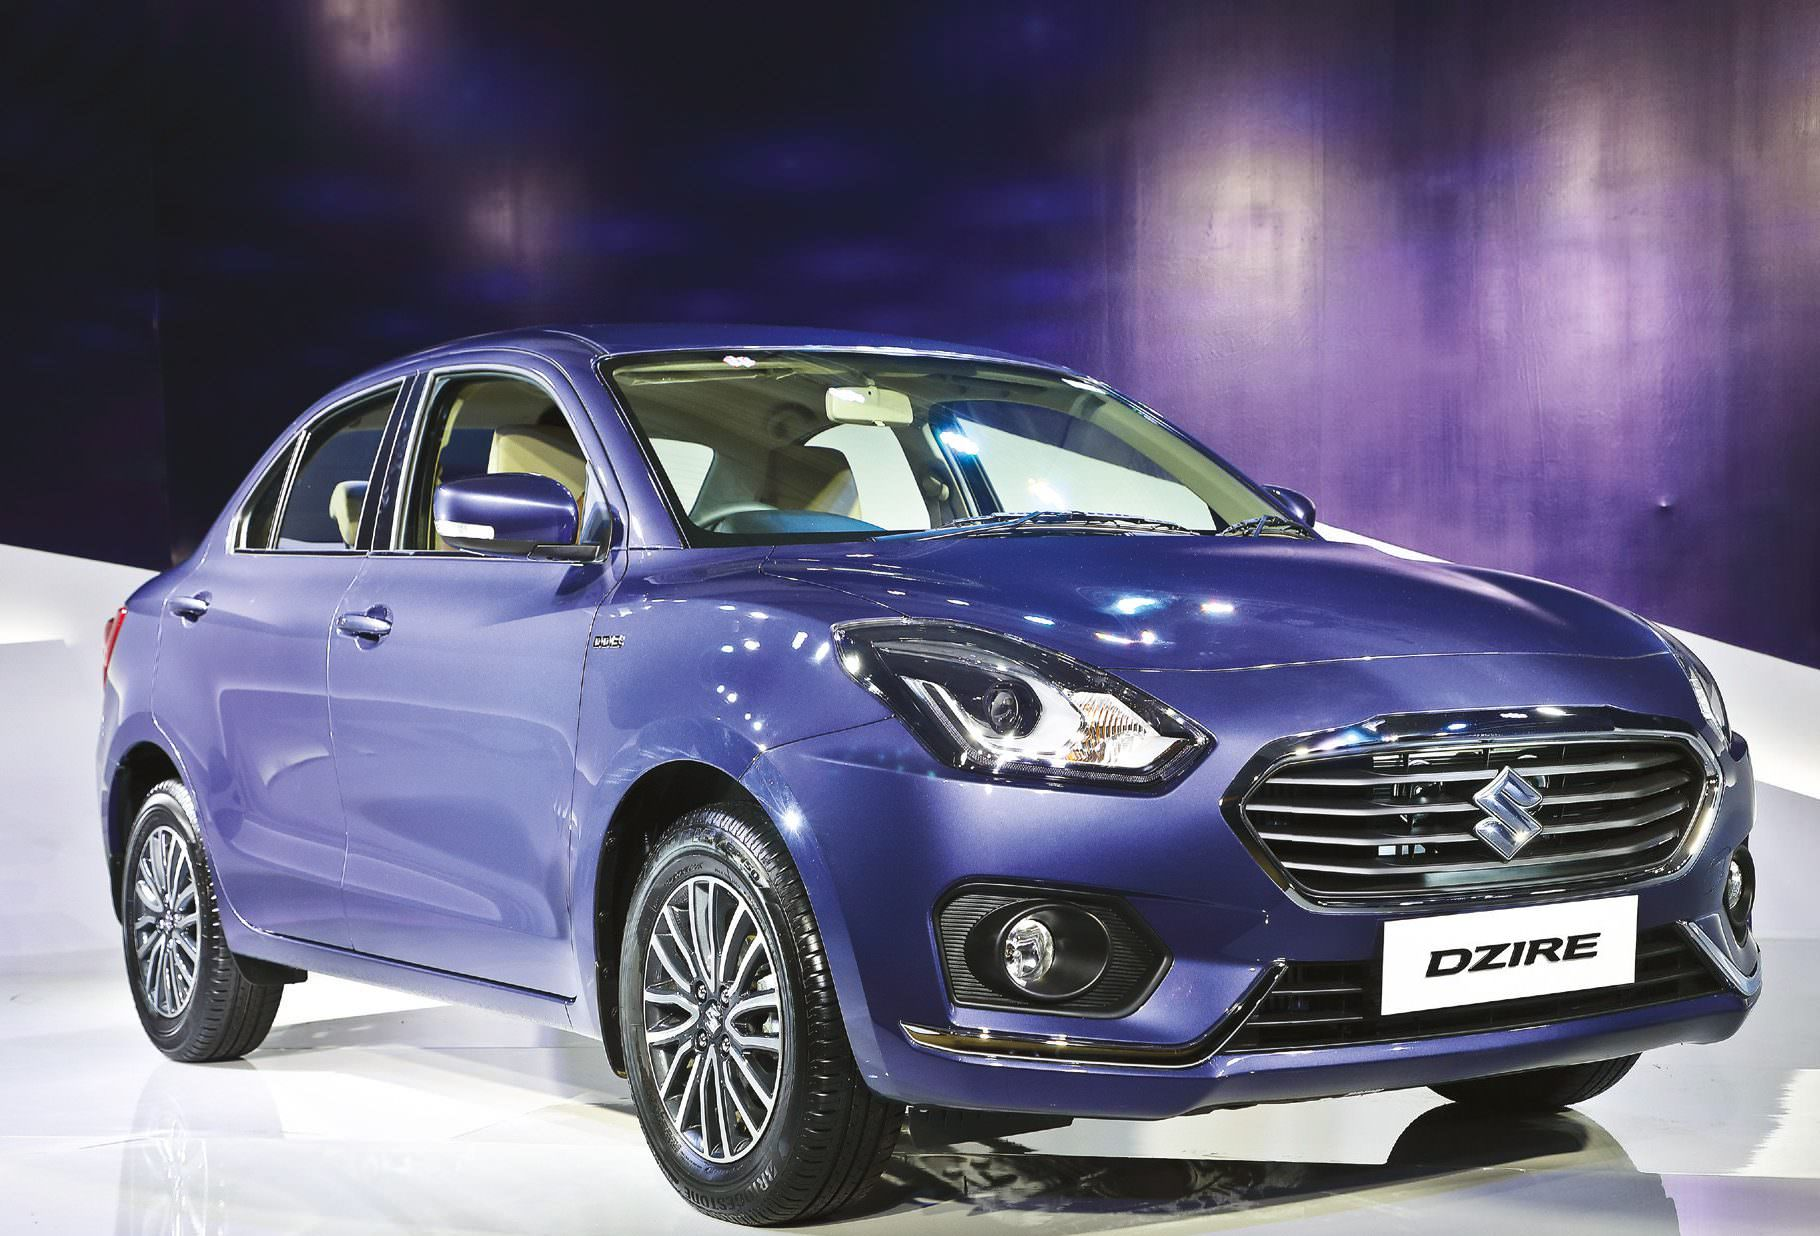 Dzire For An Upgrade